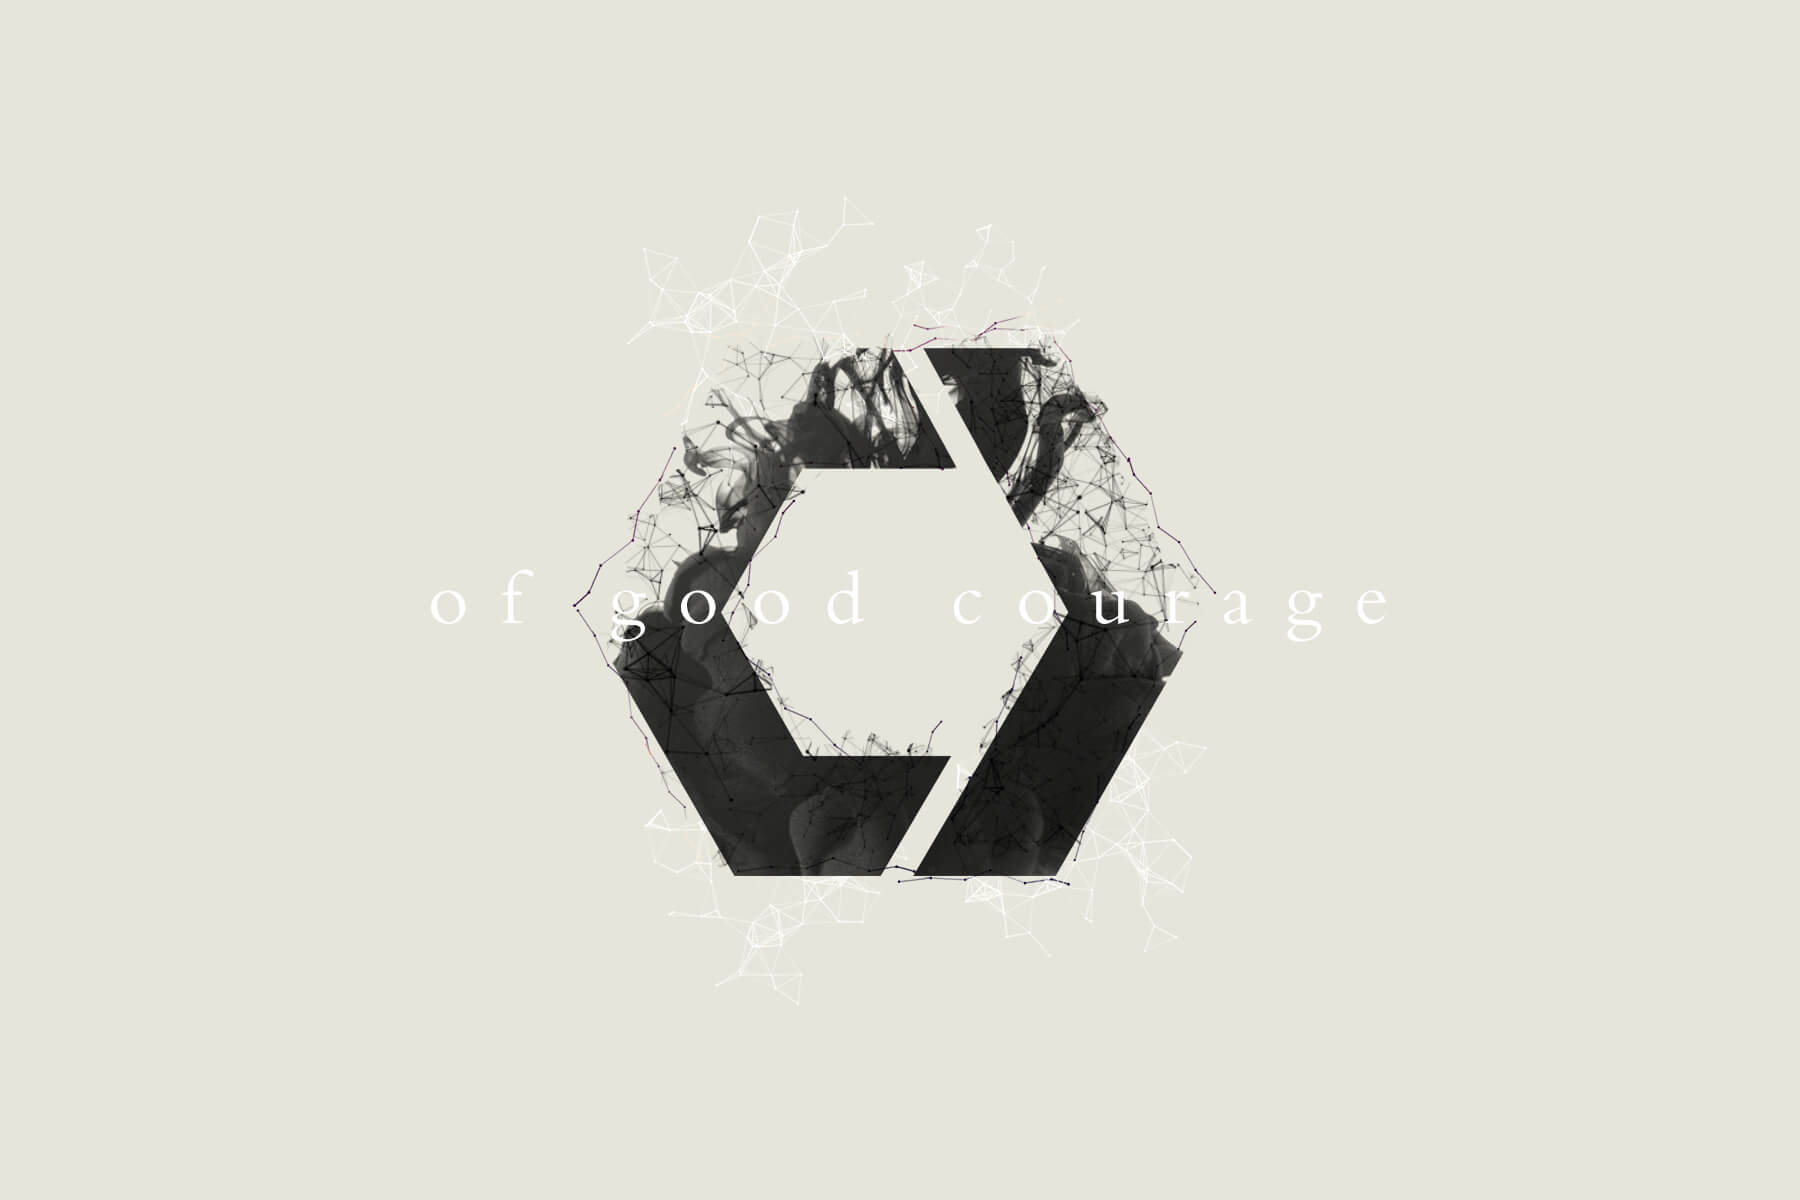 """Catalyst Conference """"Of Good Courage"""" Theme logo and branding design."""